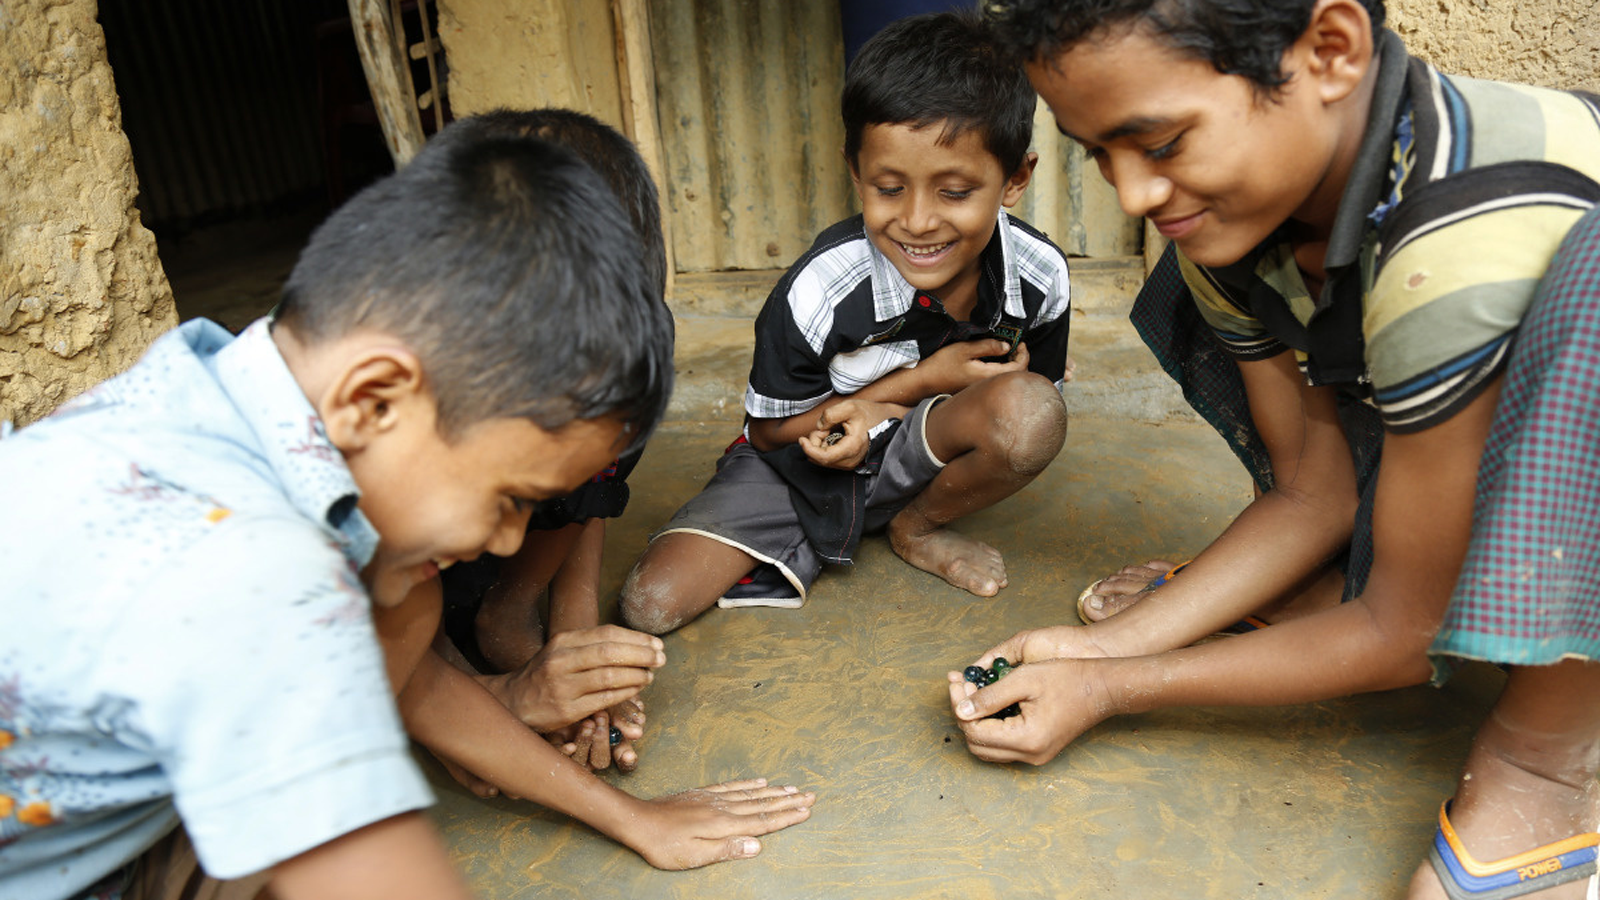 Refugee children in Bangladesh play with marbles